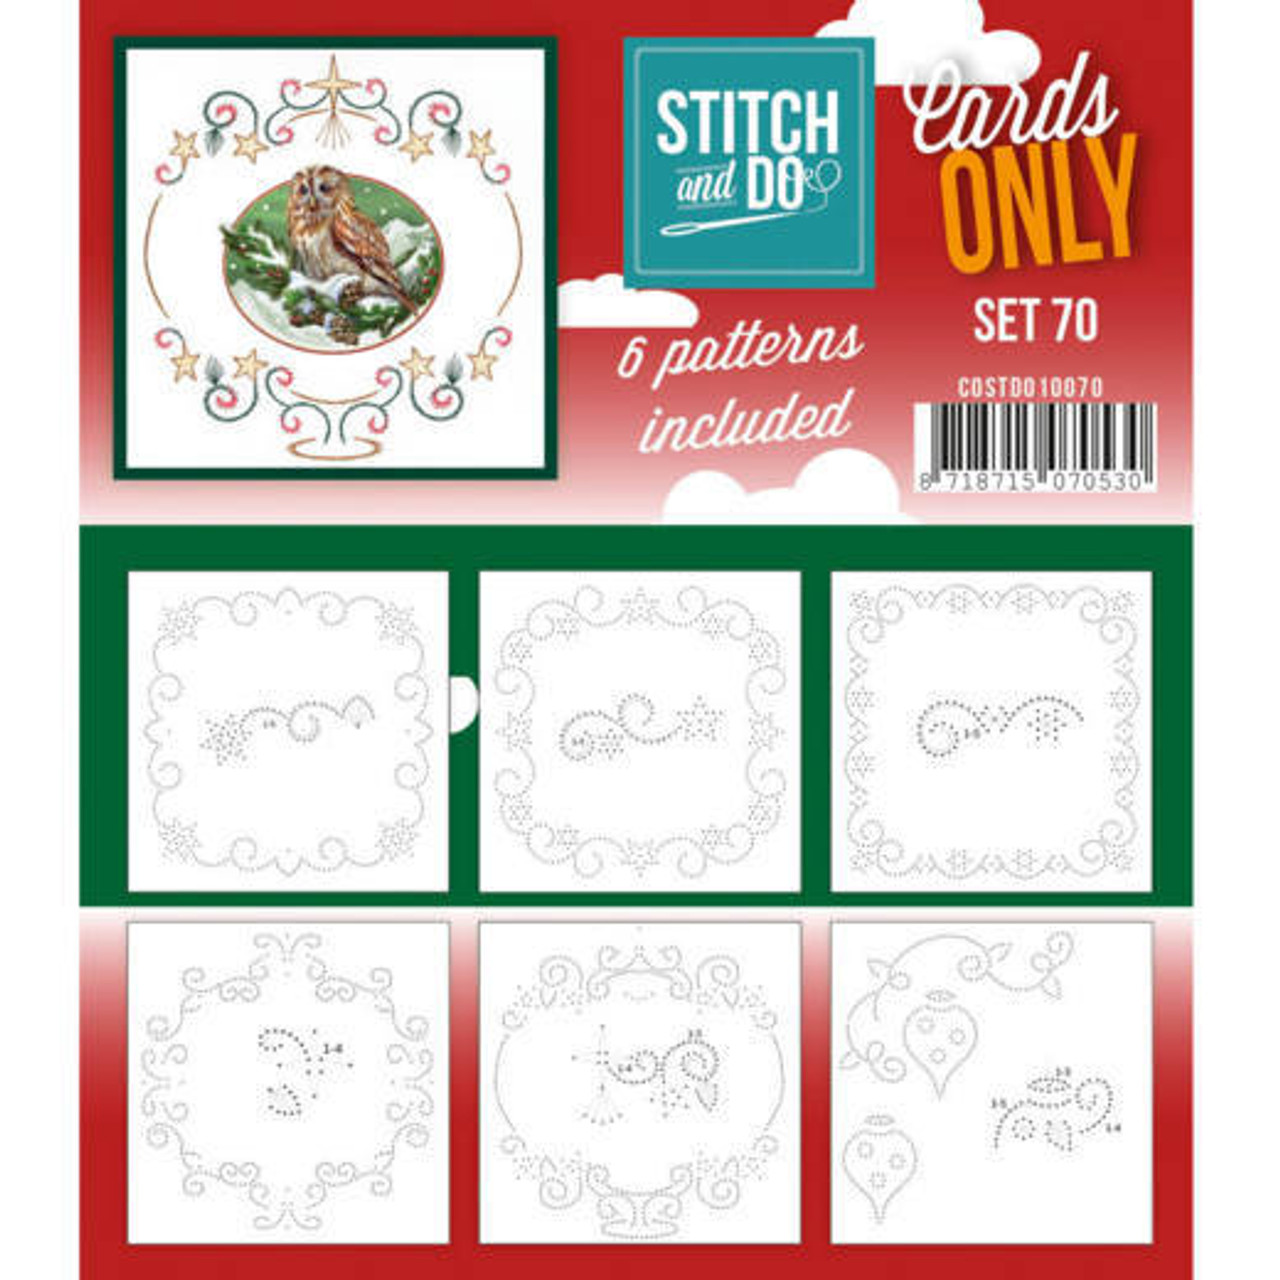 Stitch and Do Card Stitching Cardlayers Only - Set 70